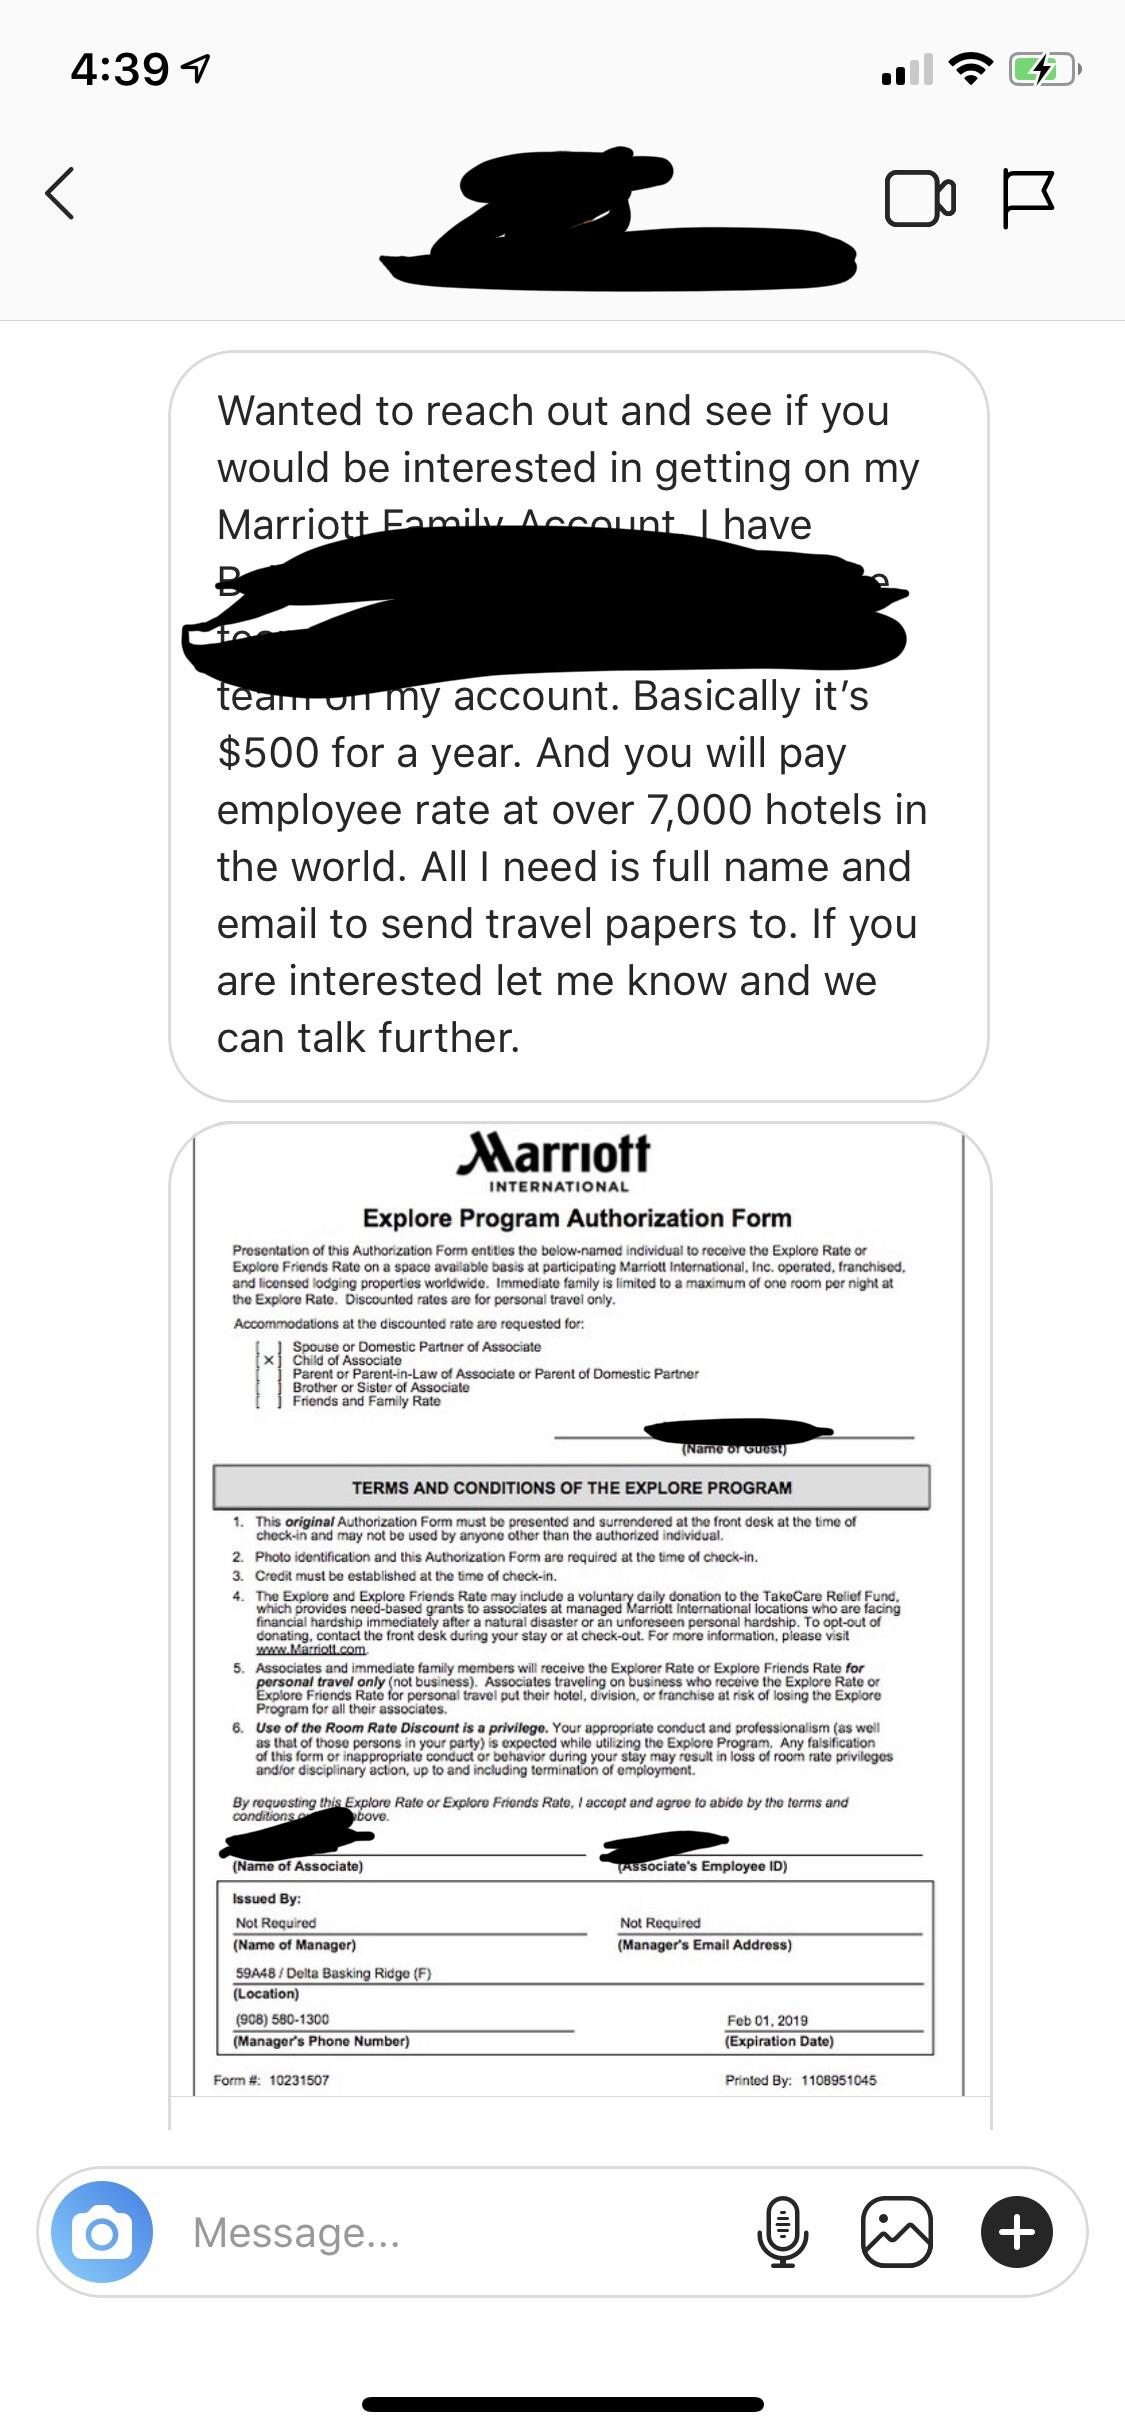 Marriott Friends And Family : marriott, friends, family, Scam?, Invited, Random, Person, Marriott, Family, Account., Scams